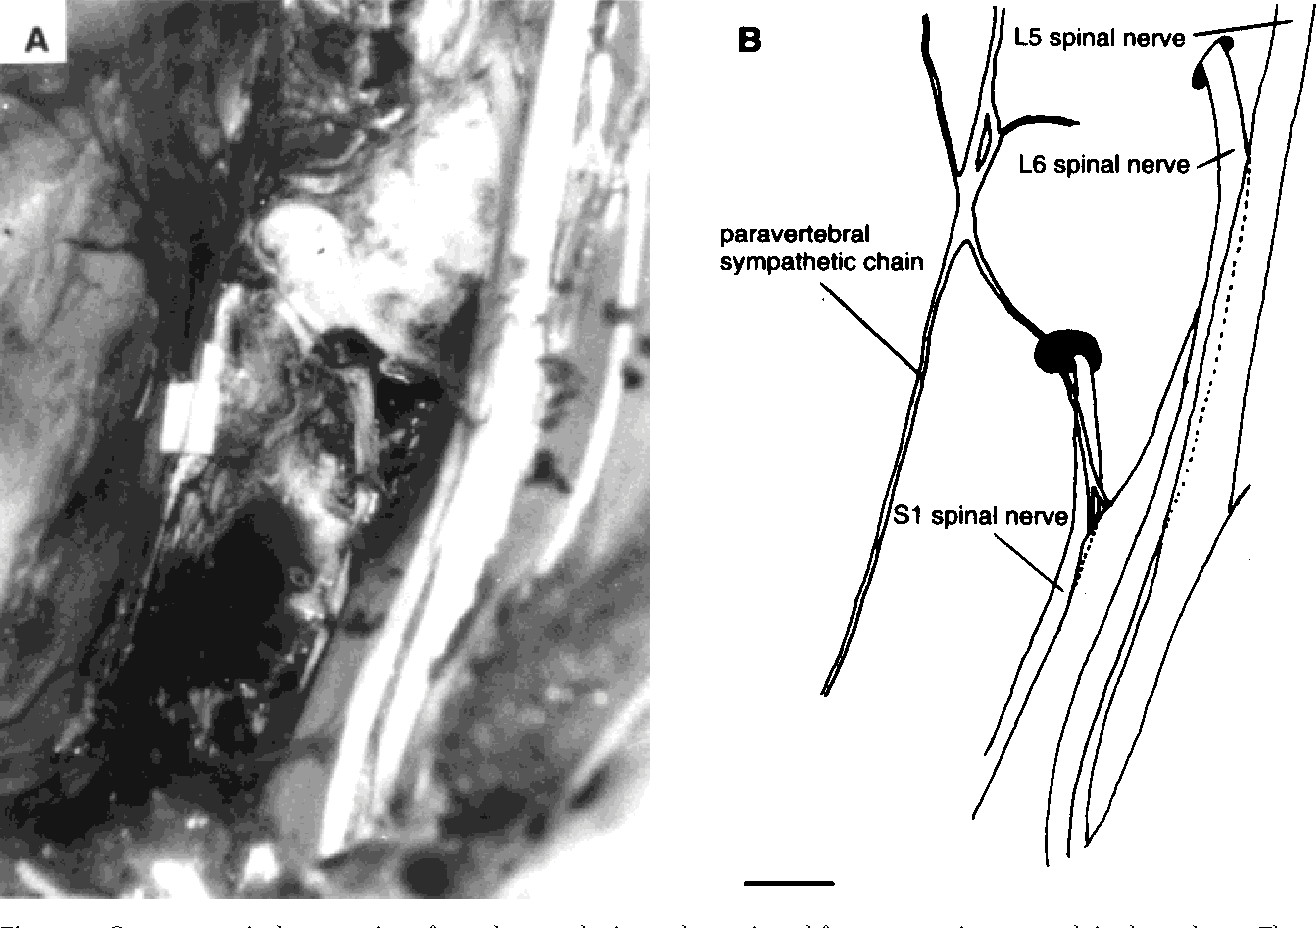 Evidence Of Sympathetic Fibers In The Male Rat Pelvic Nerve By Gross